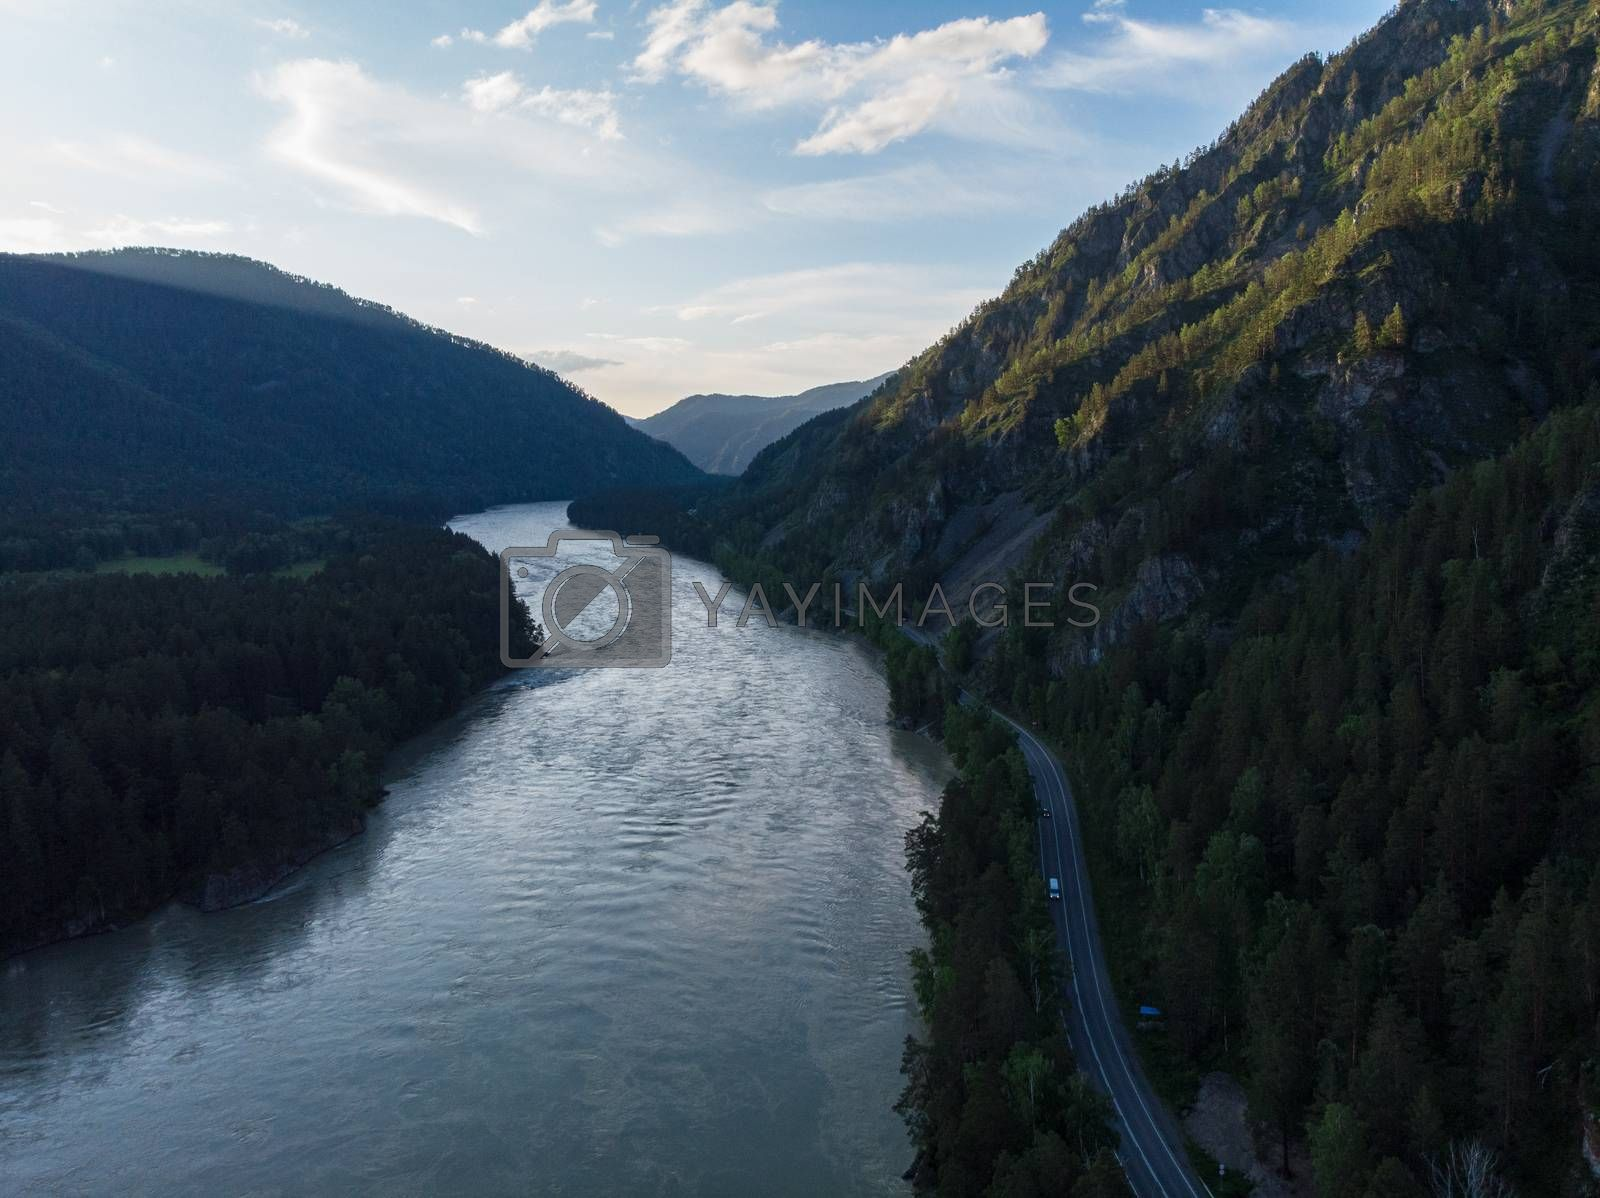 Aerial view of Katun river with road, after sunset in Altai mountains